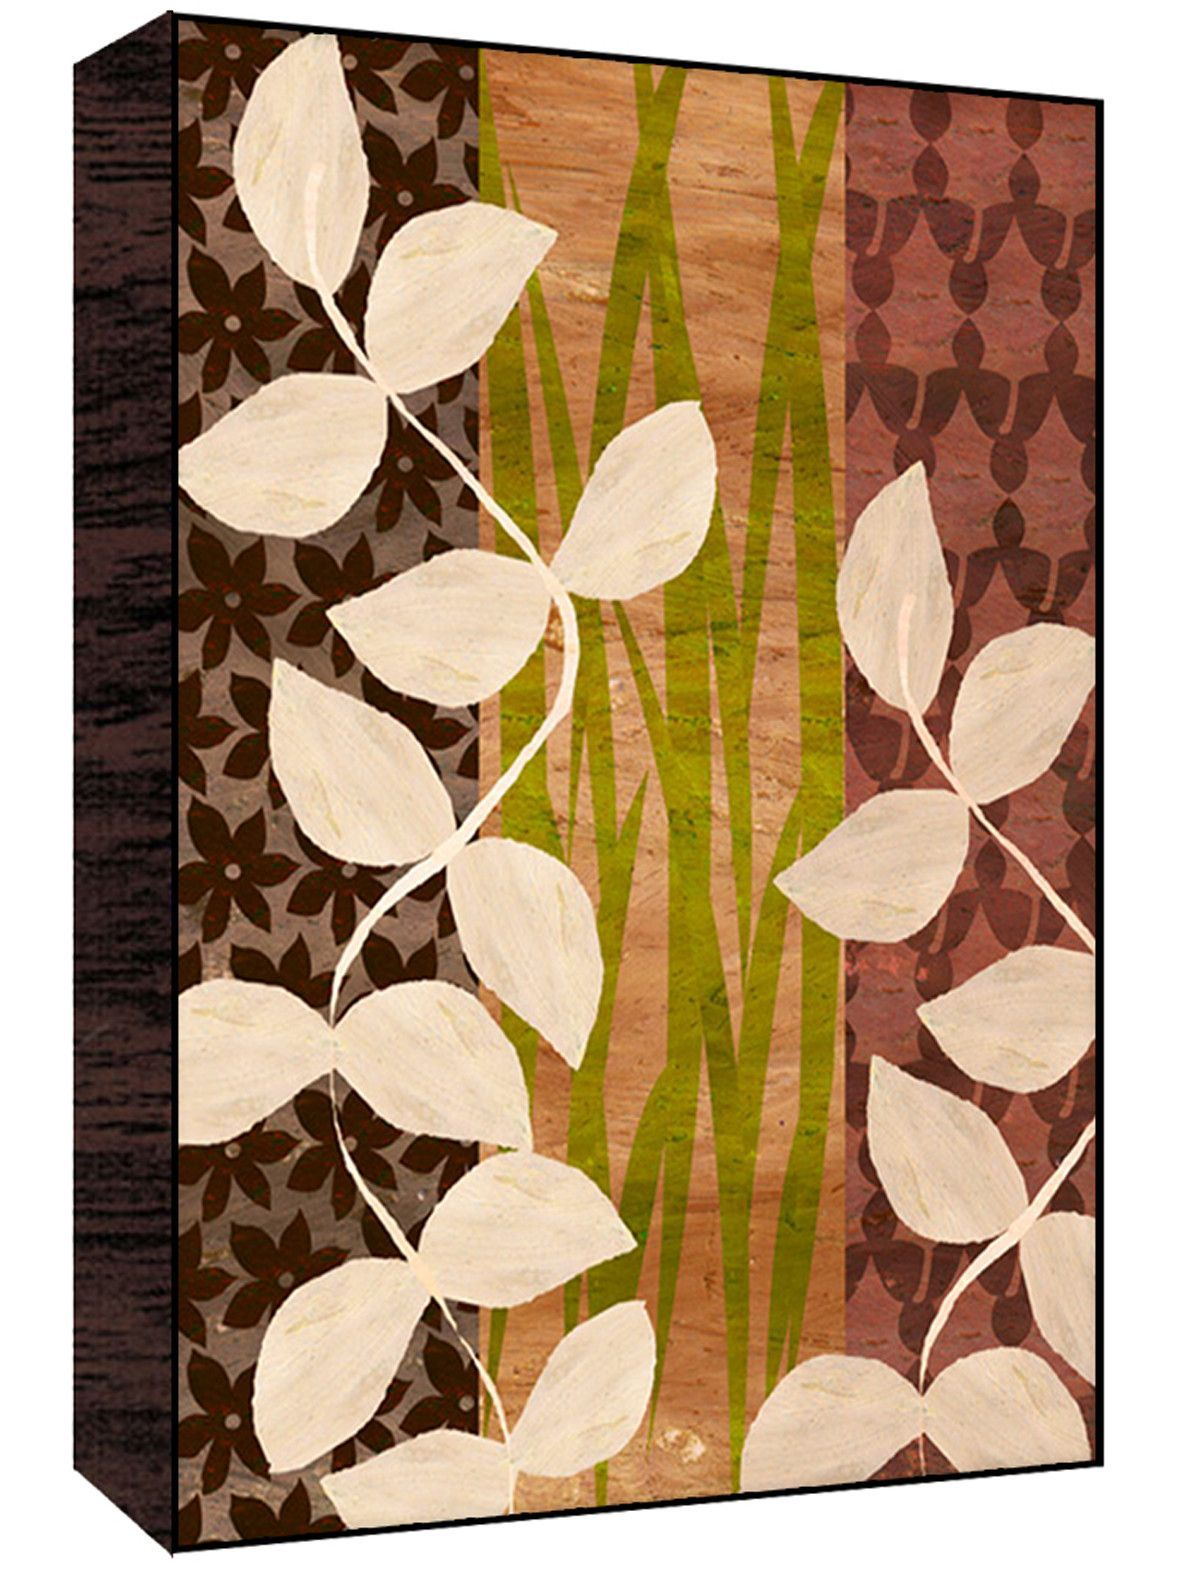 Leaves and Branches I Wall Art | Products | Pinterest | Leaf art and ...